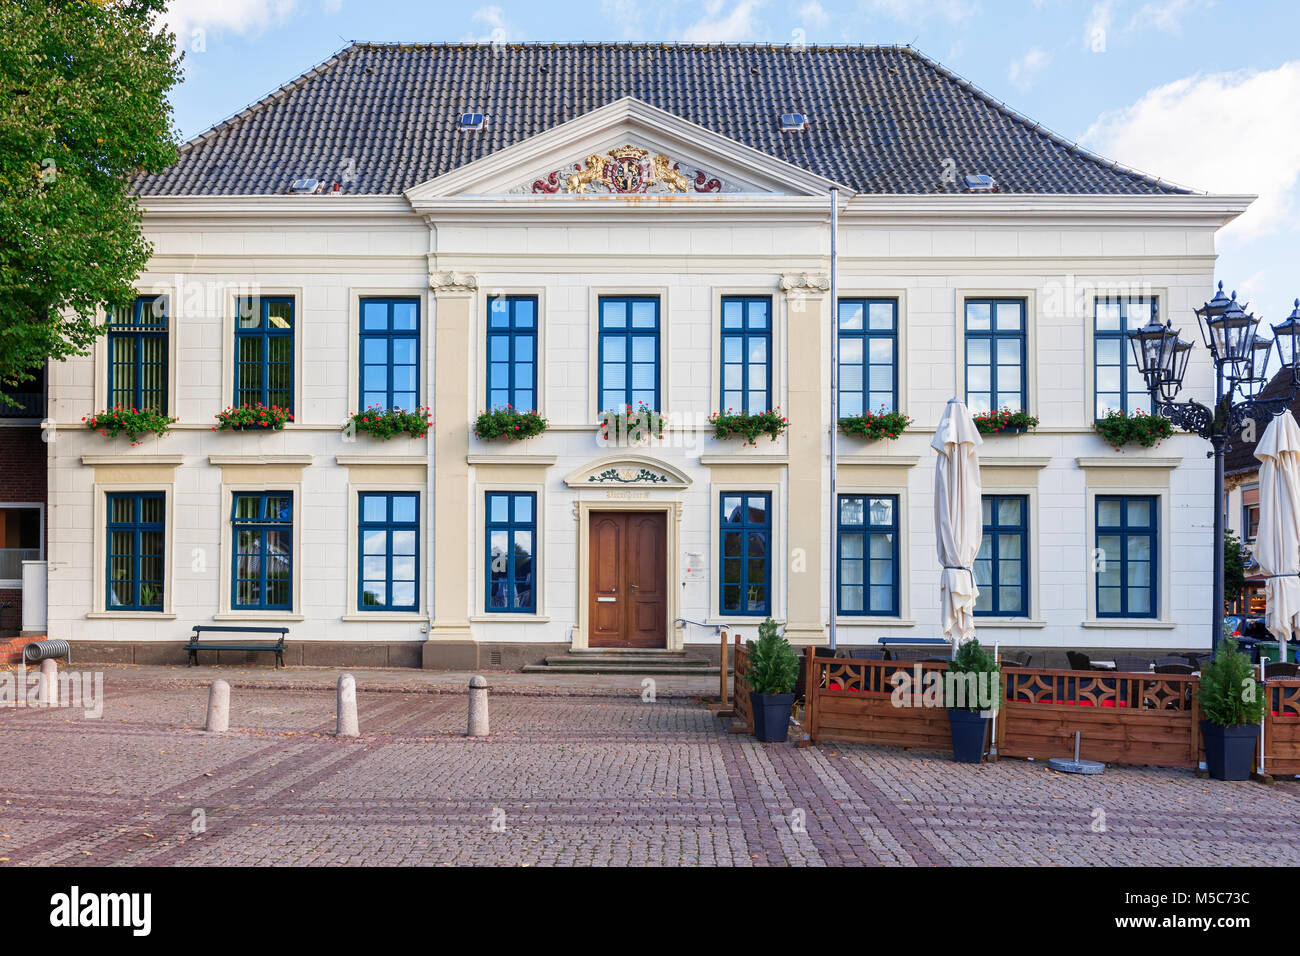 Frontal View Of The Town Hall In Esens In Classicist Style With